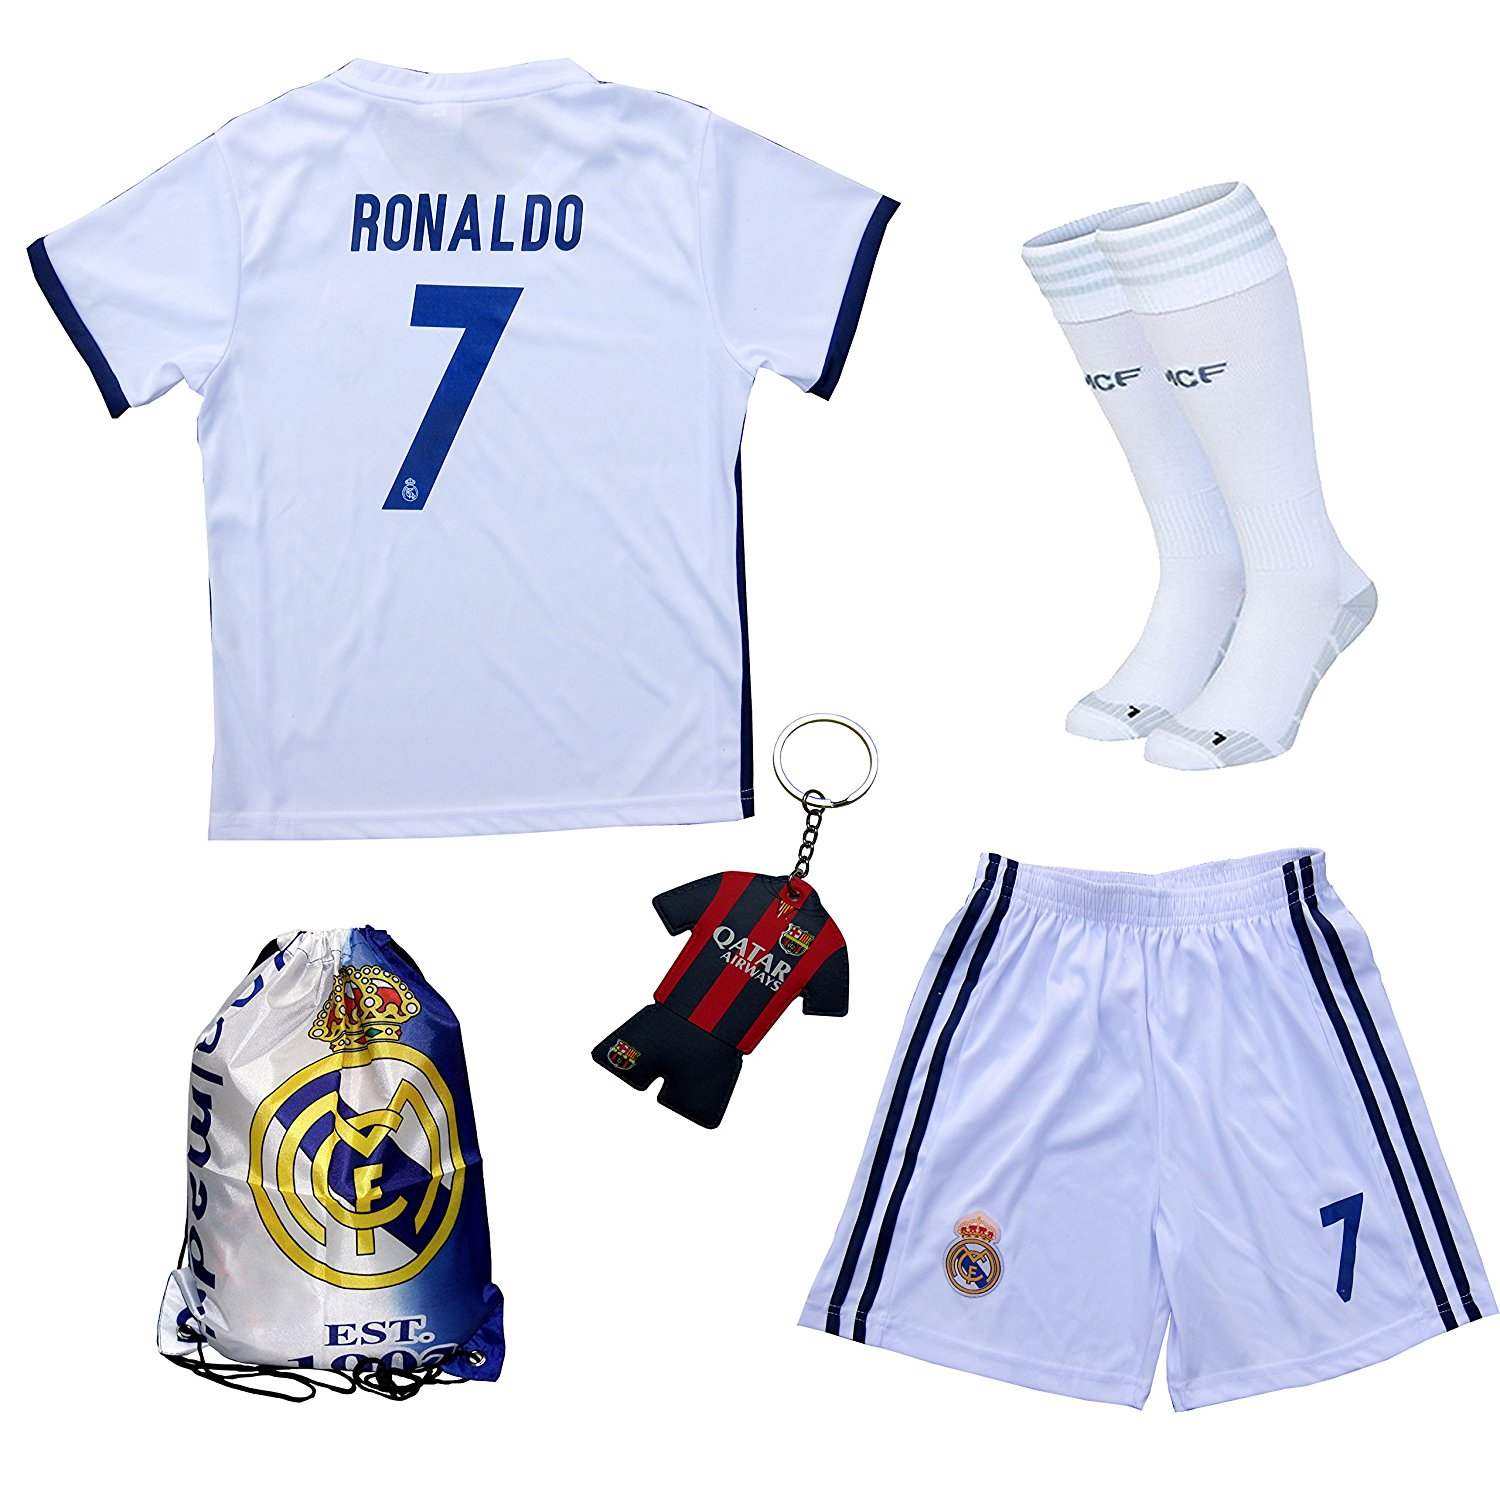 9bb5fe0522e Get Quotations · 2017/2018 Real Madrid Cristiano Ronaldo #7 Home Football  Soccer Kids Jersey & Short